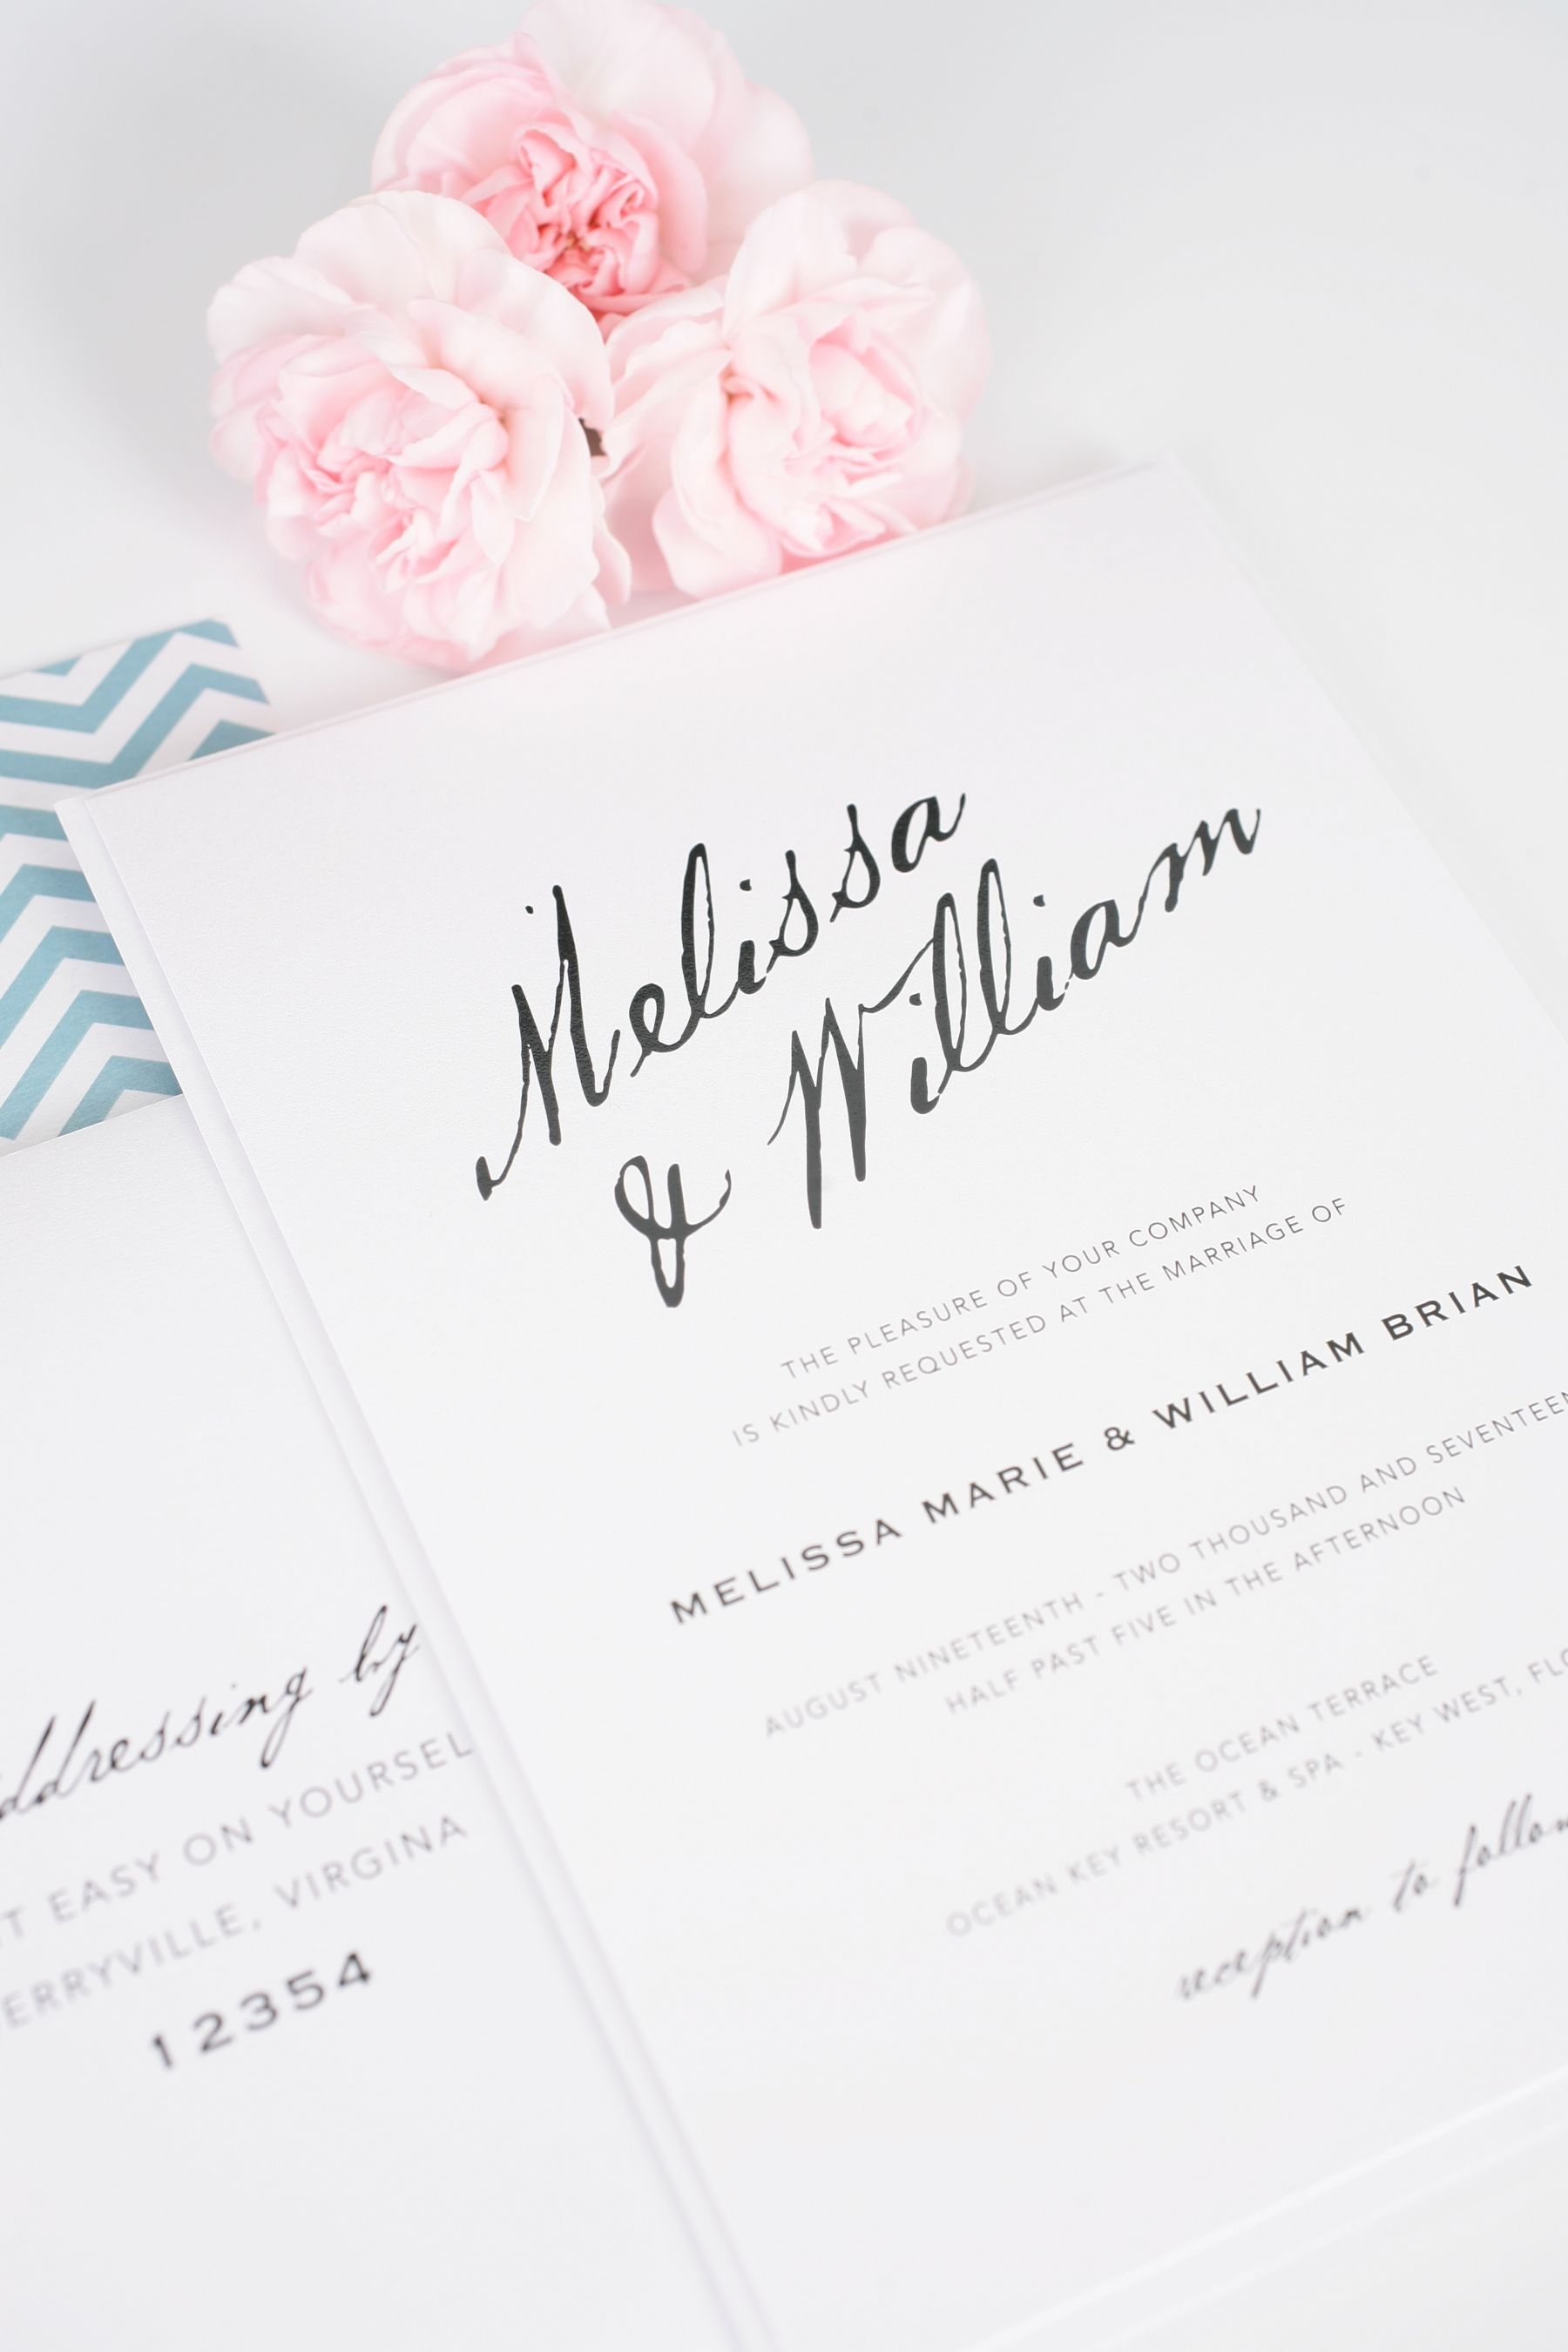 Wedding Invitations with Modern Calligraphy – Wedding Invitations